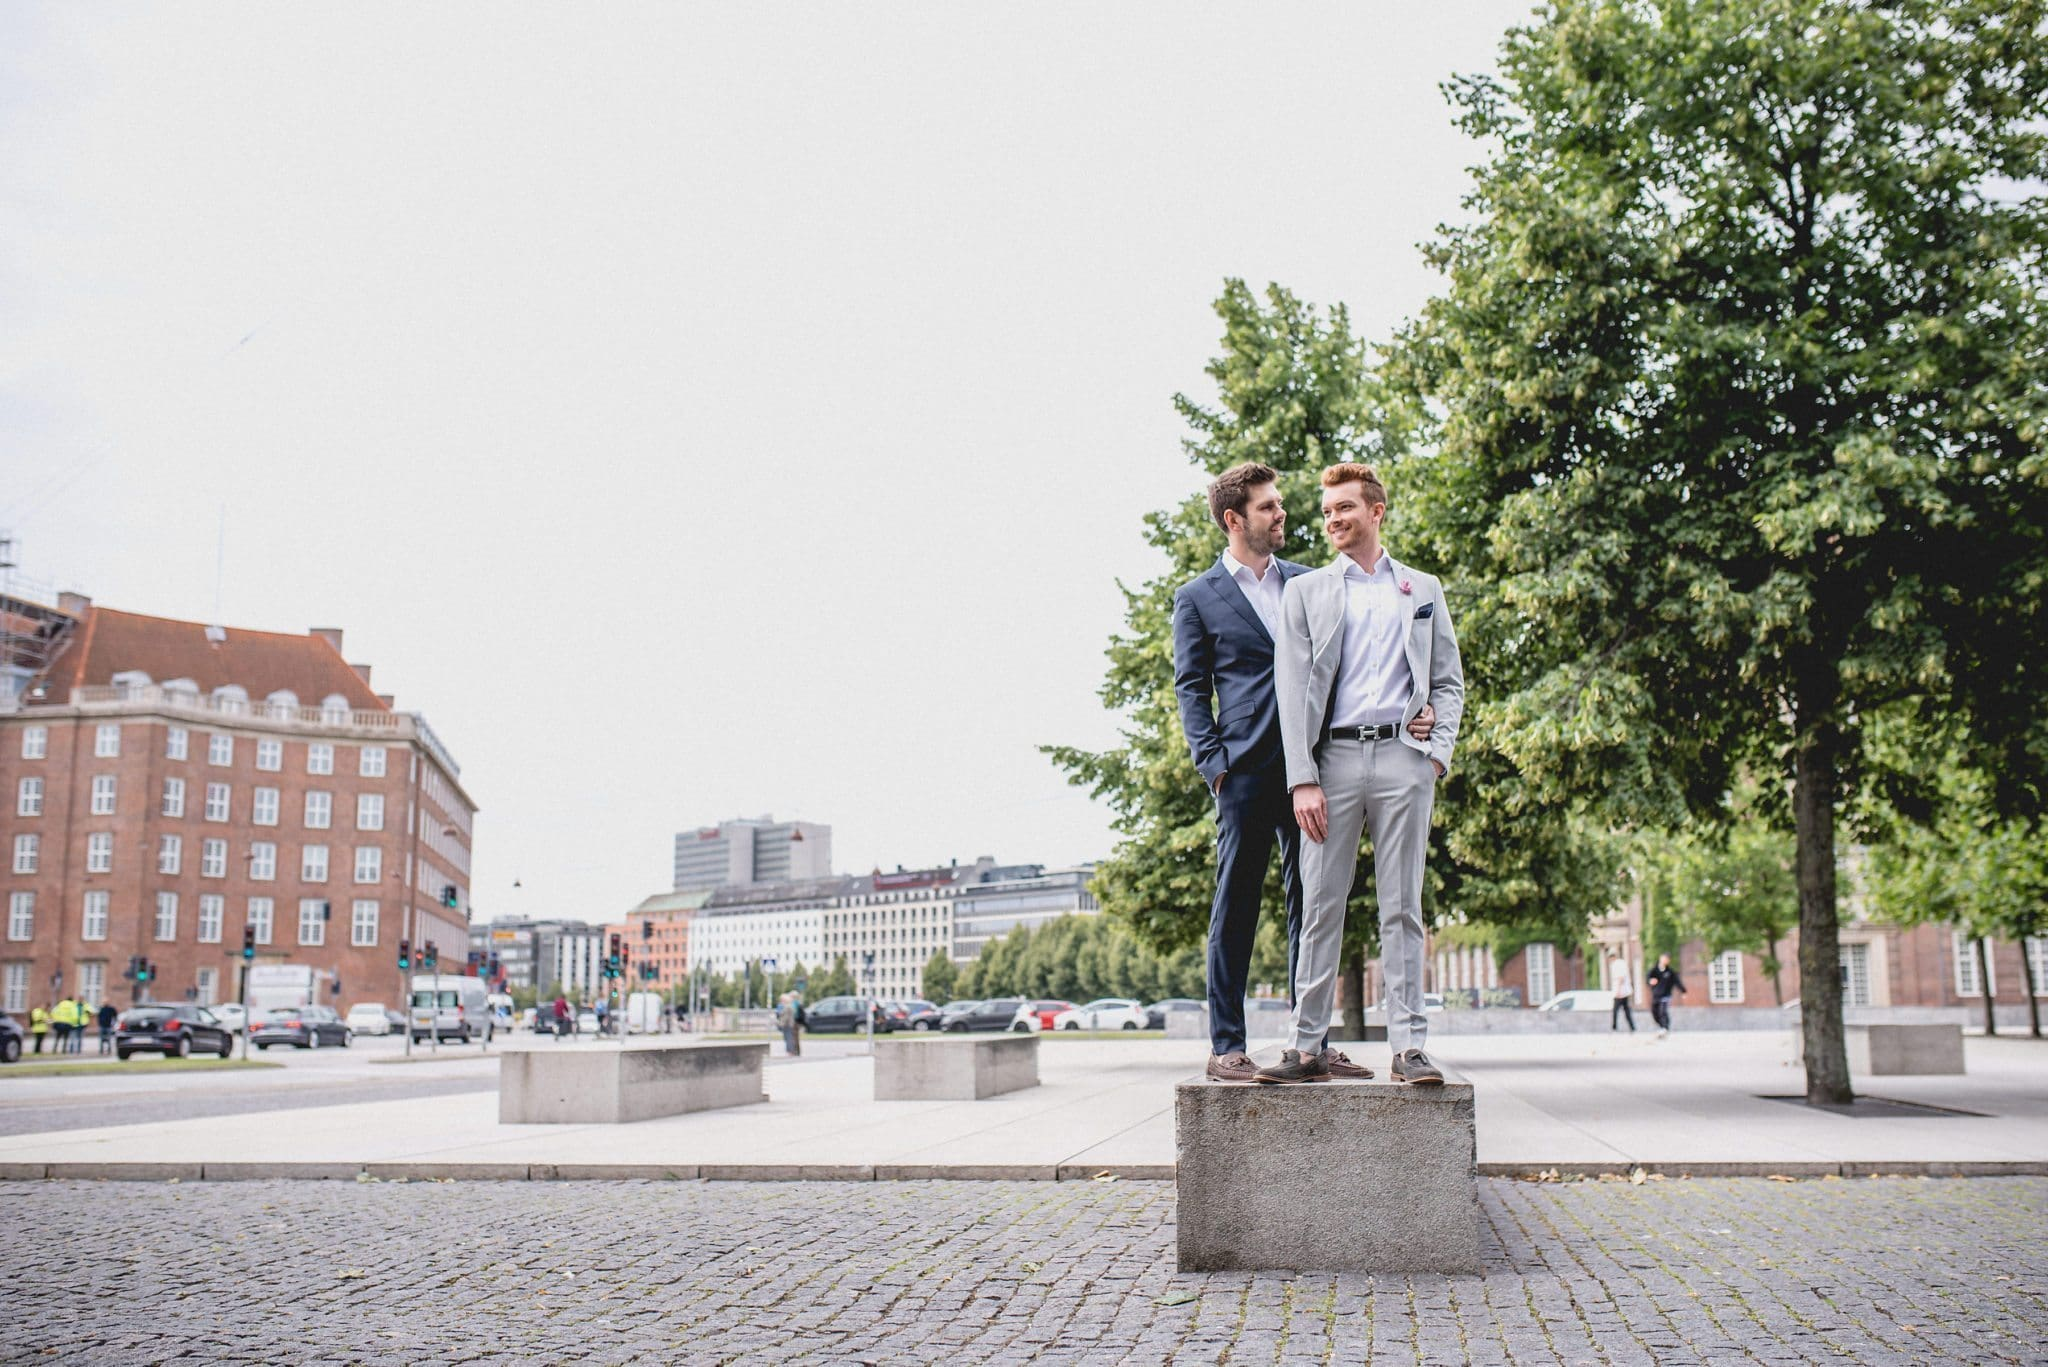 A striking same-sex couple standing together on a pillar in a Copenhagen square